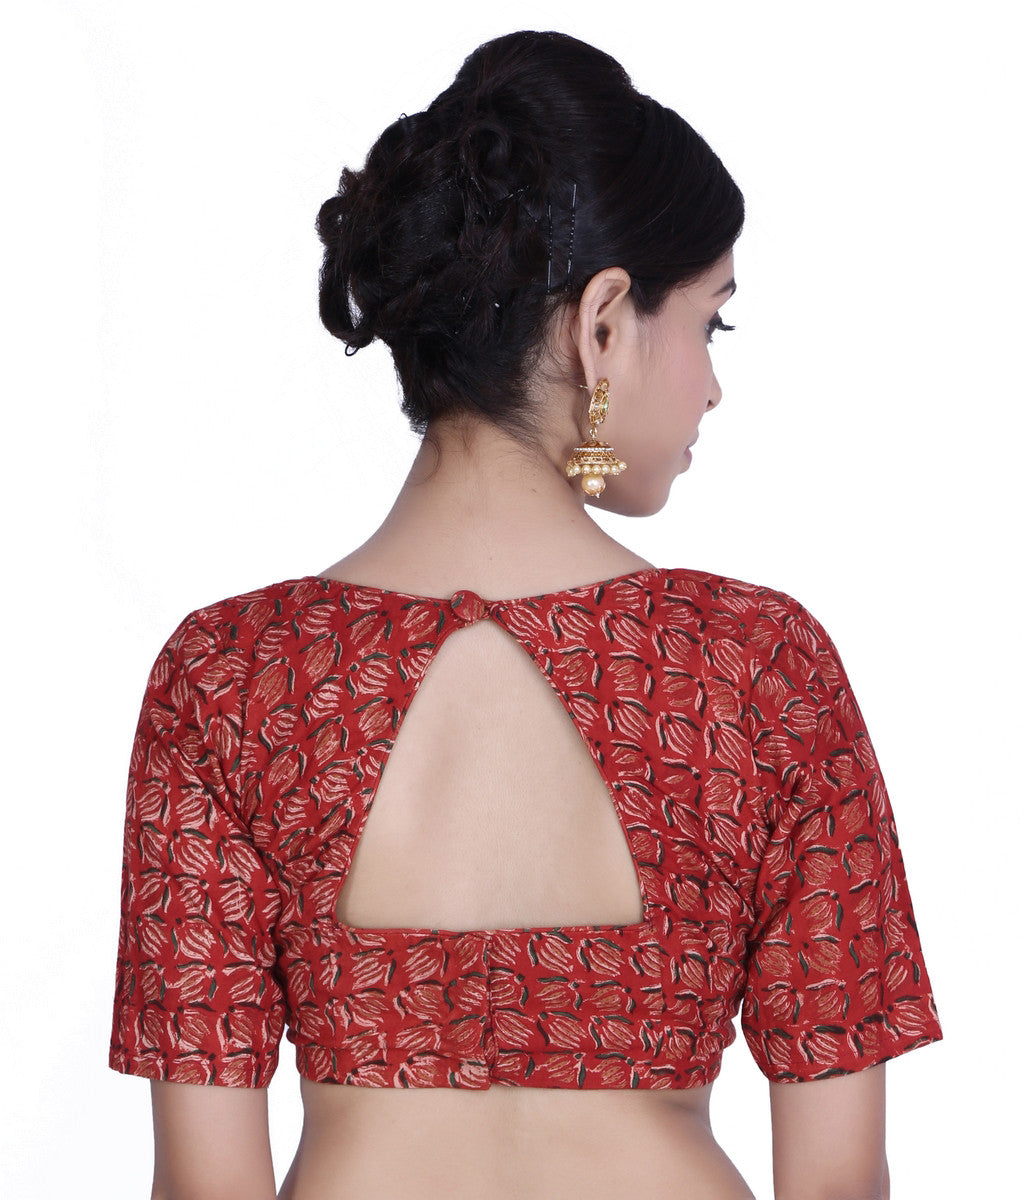 JKK Women's Red Stitched Printed Wedding Bridal Cotton Saree Blouse Crop Top JKKCBL9 - JKK Mart